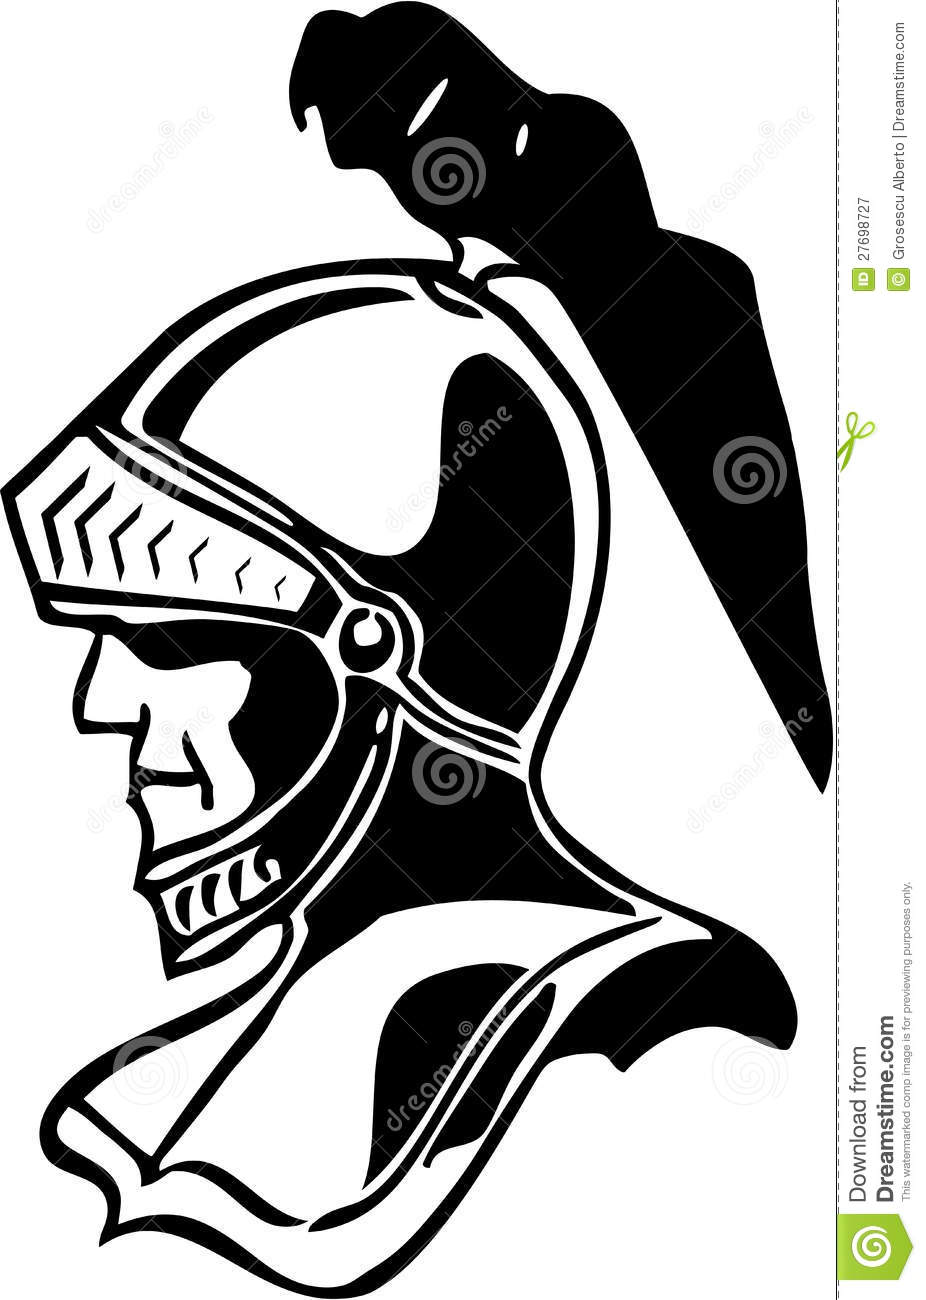 Knight Royalty Free Stock Photography - Image: 27698727